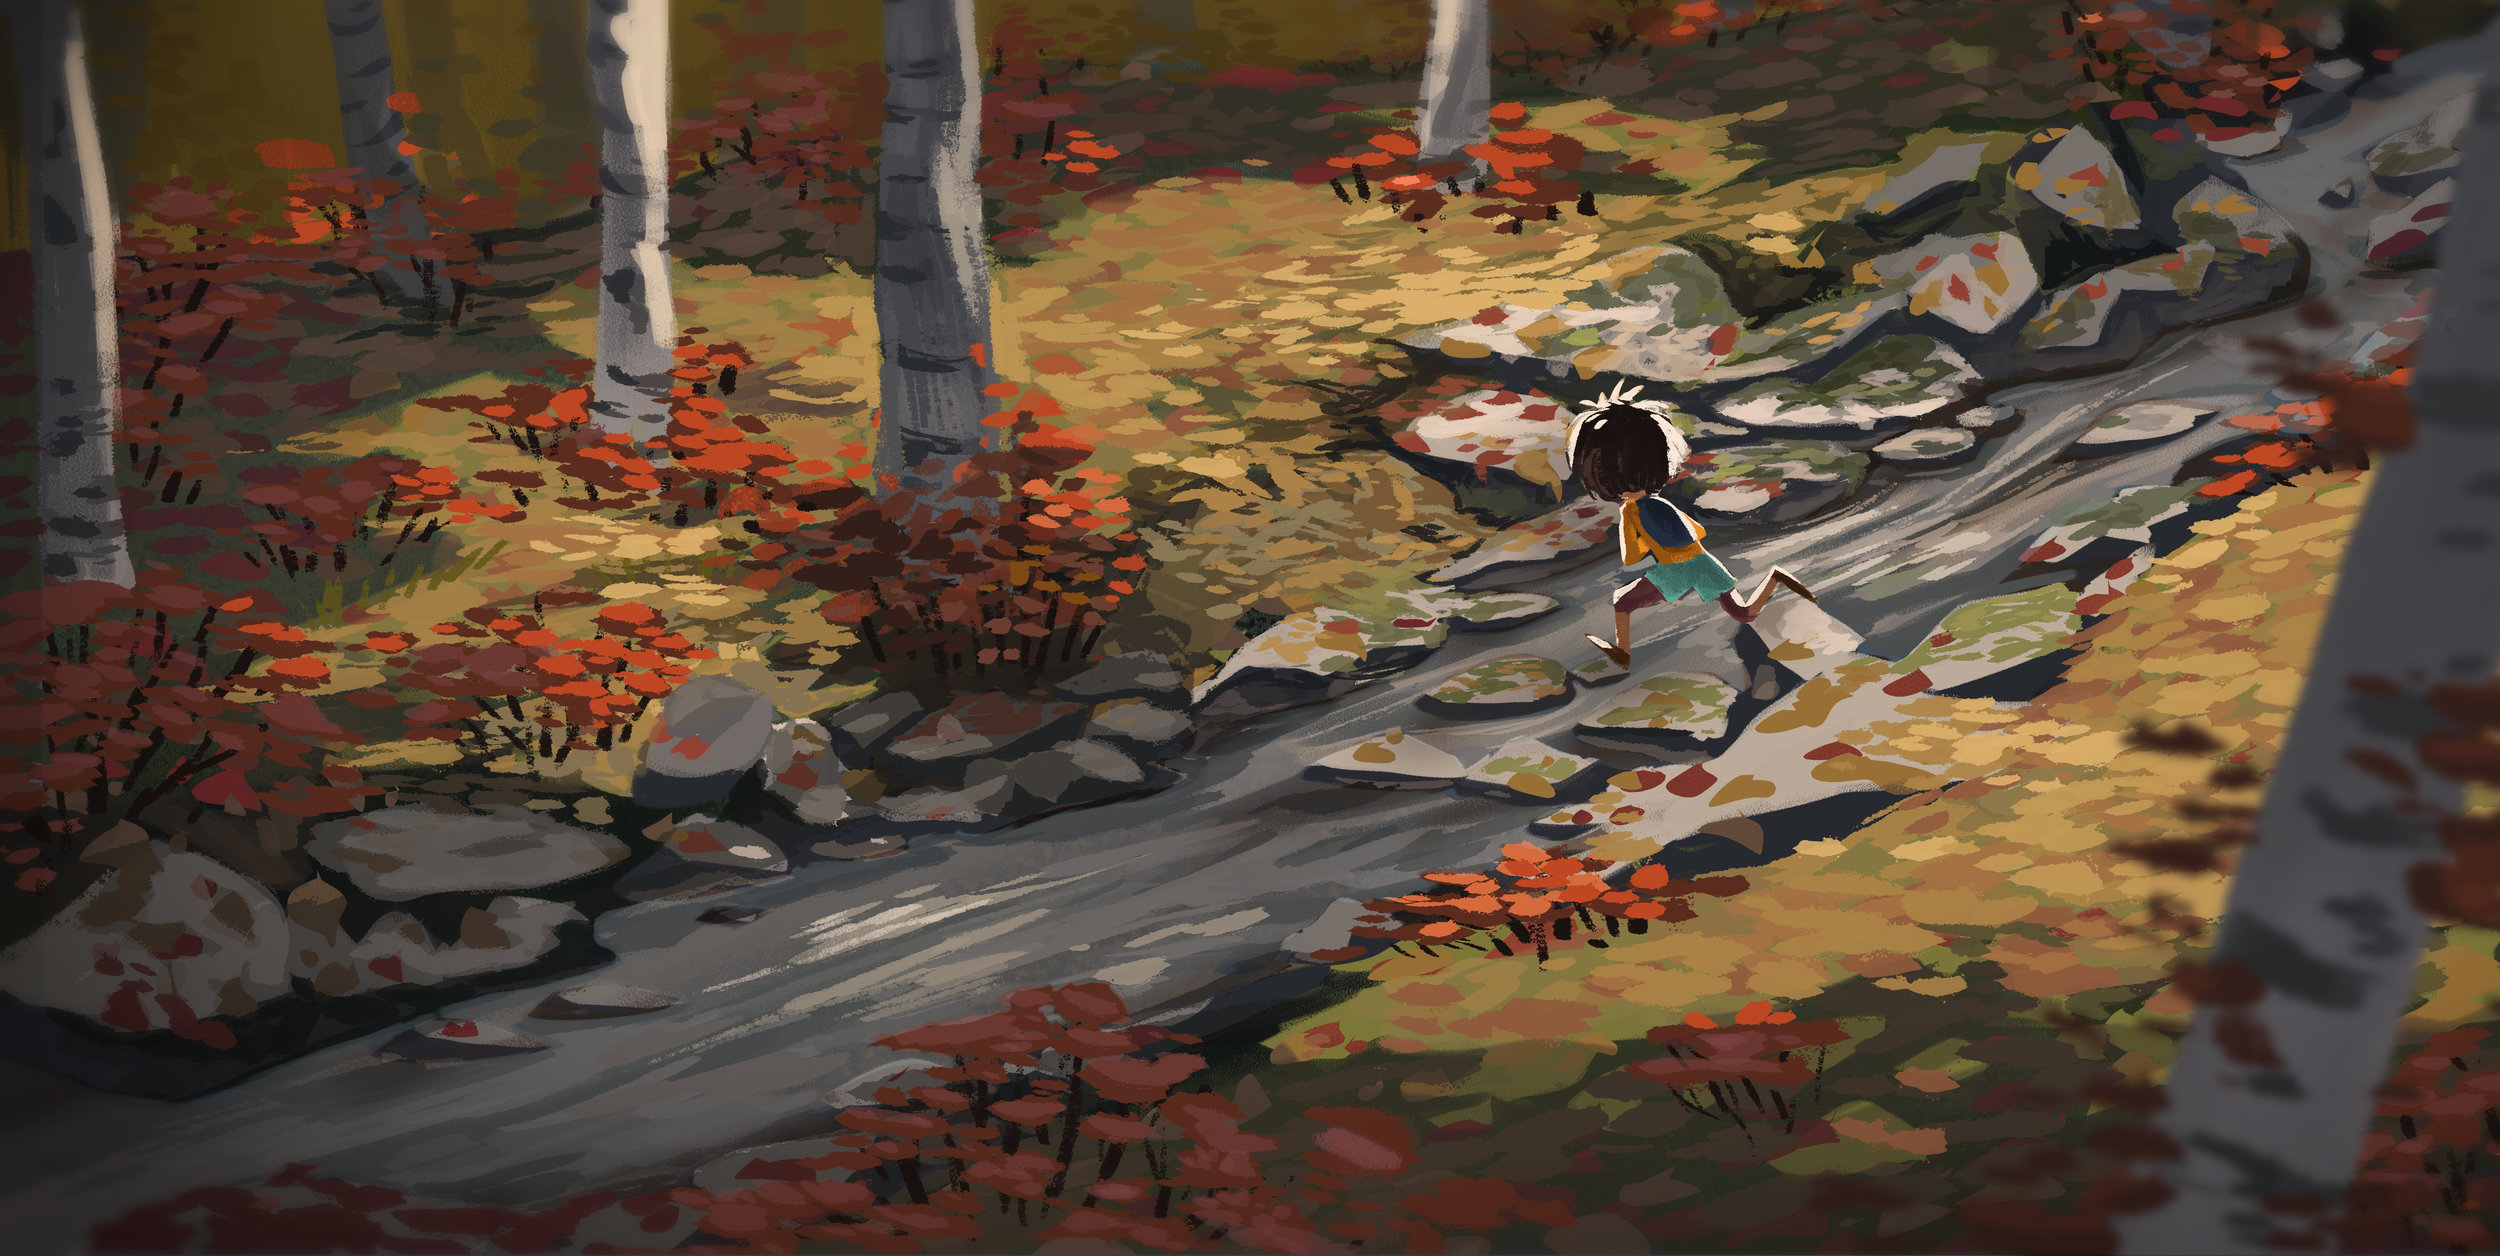 A quick painting to explore a location for a film sequence.